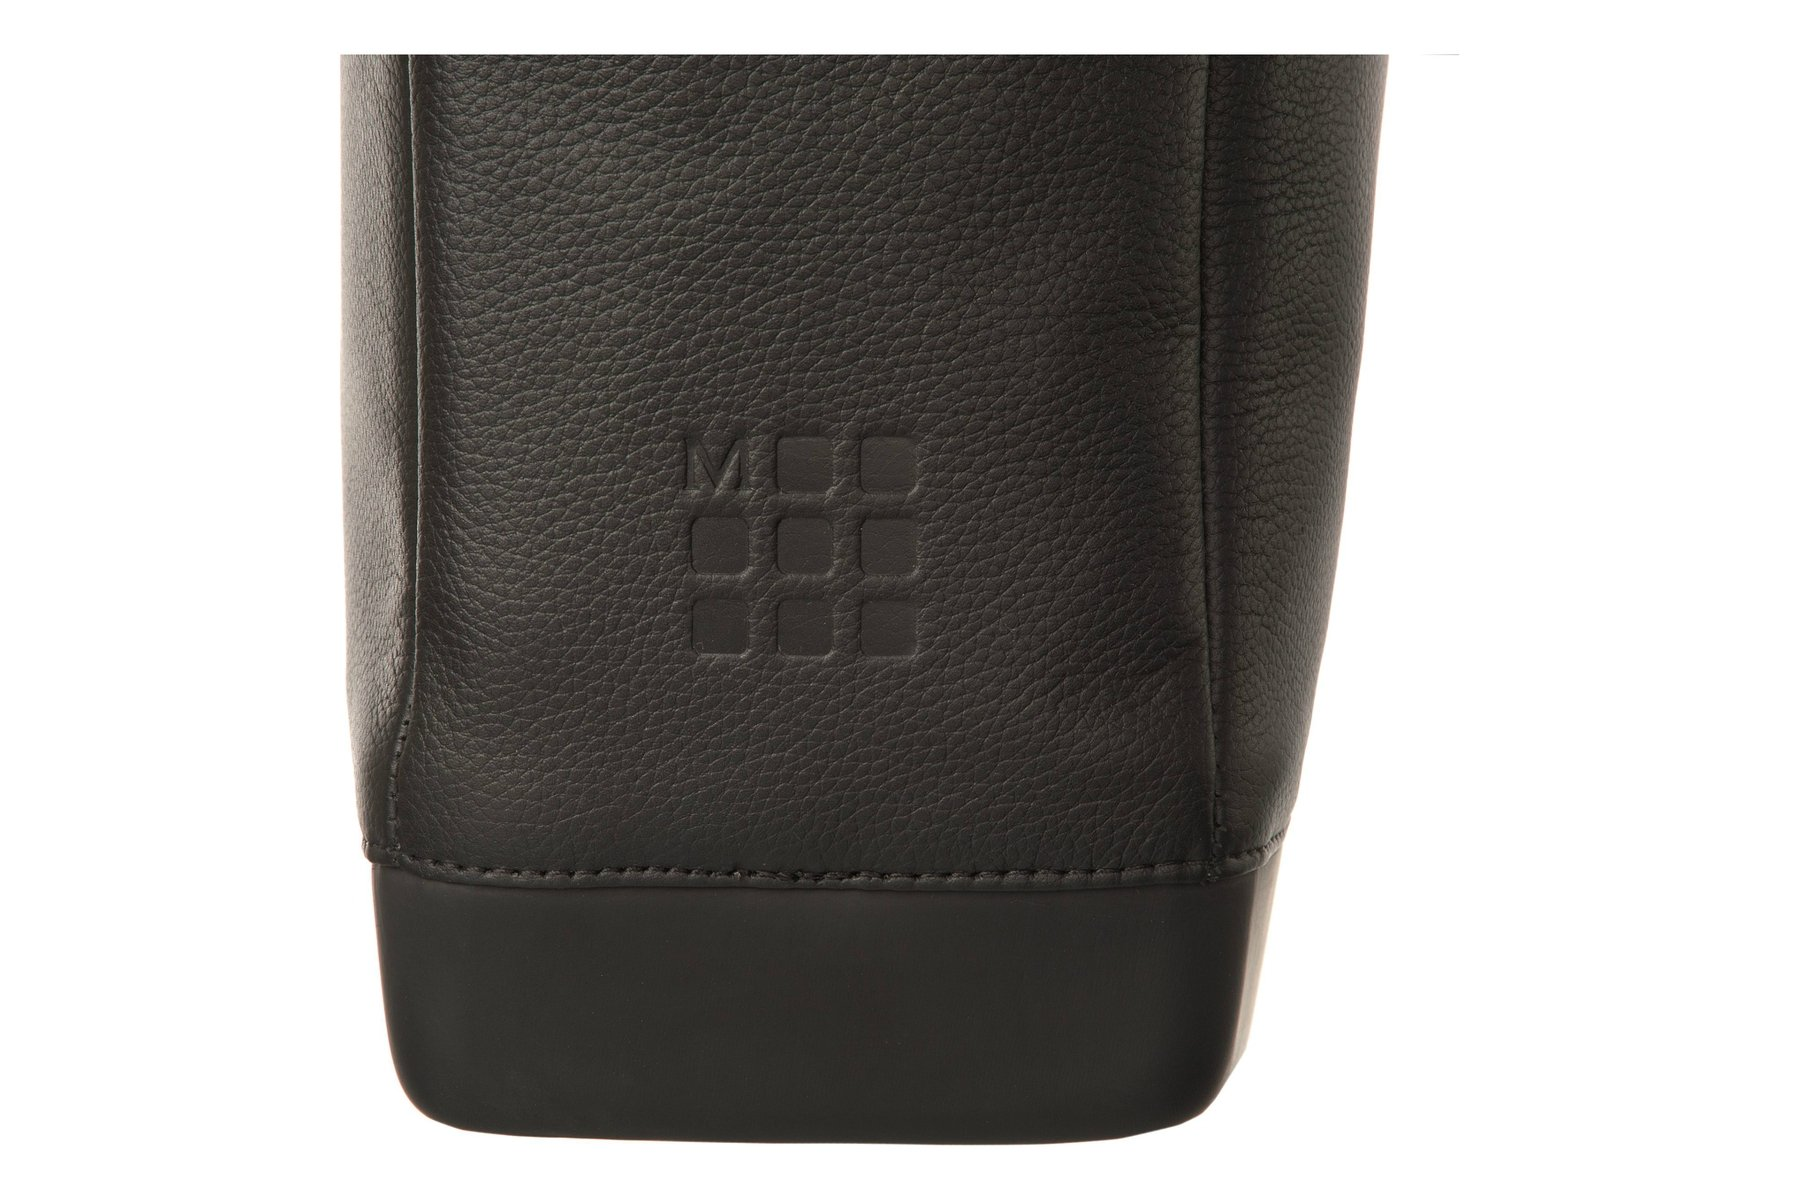 Moleskine Classic Leather Utility Bag, Black, For Work, School, Travel, and Everyday Use, Space for Tablet Laptop and Chargers, Notebook Planner or Organizer, Padded Adjustable Straps, Secure Zipper by Moleskine (Image #3)